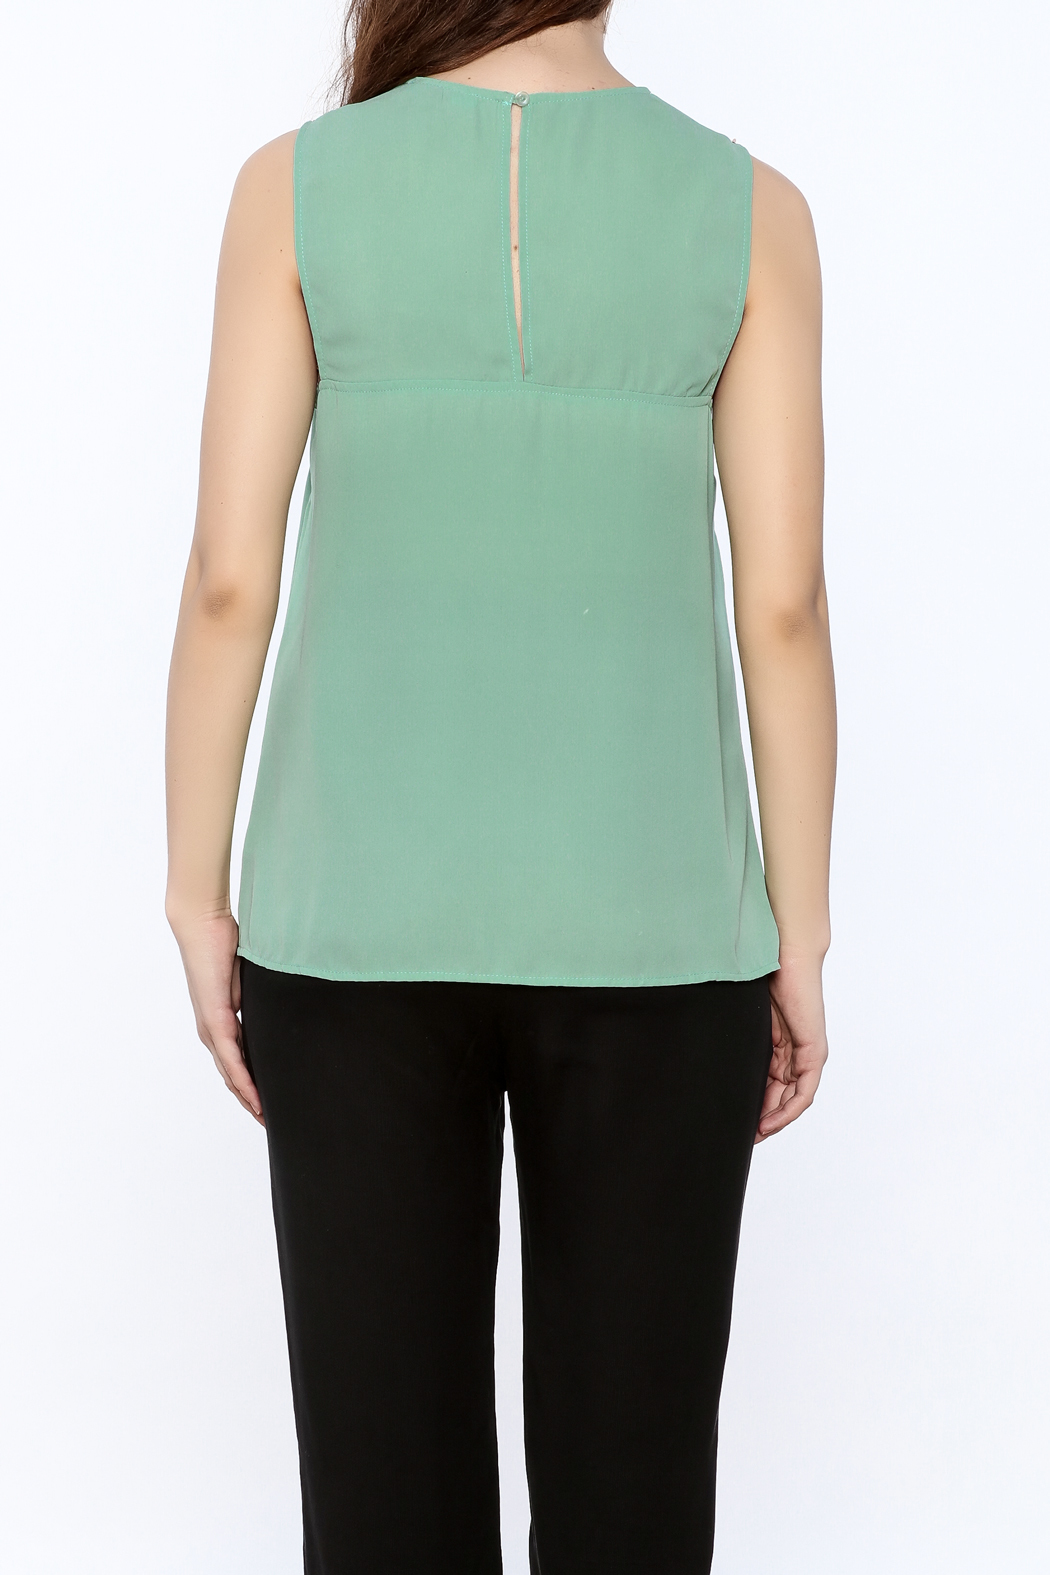 Karlie Mint Green Sleeveless Top - Back Cropped Image